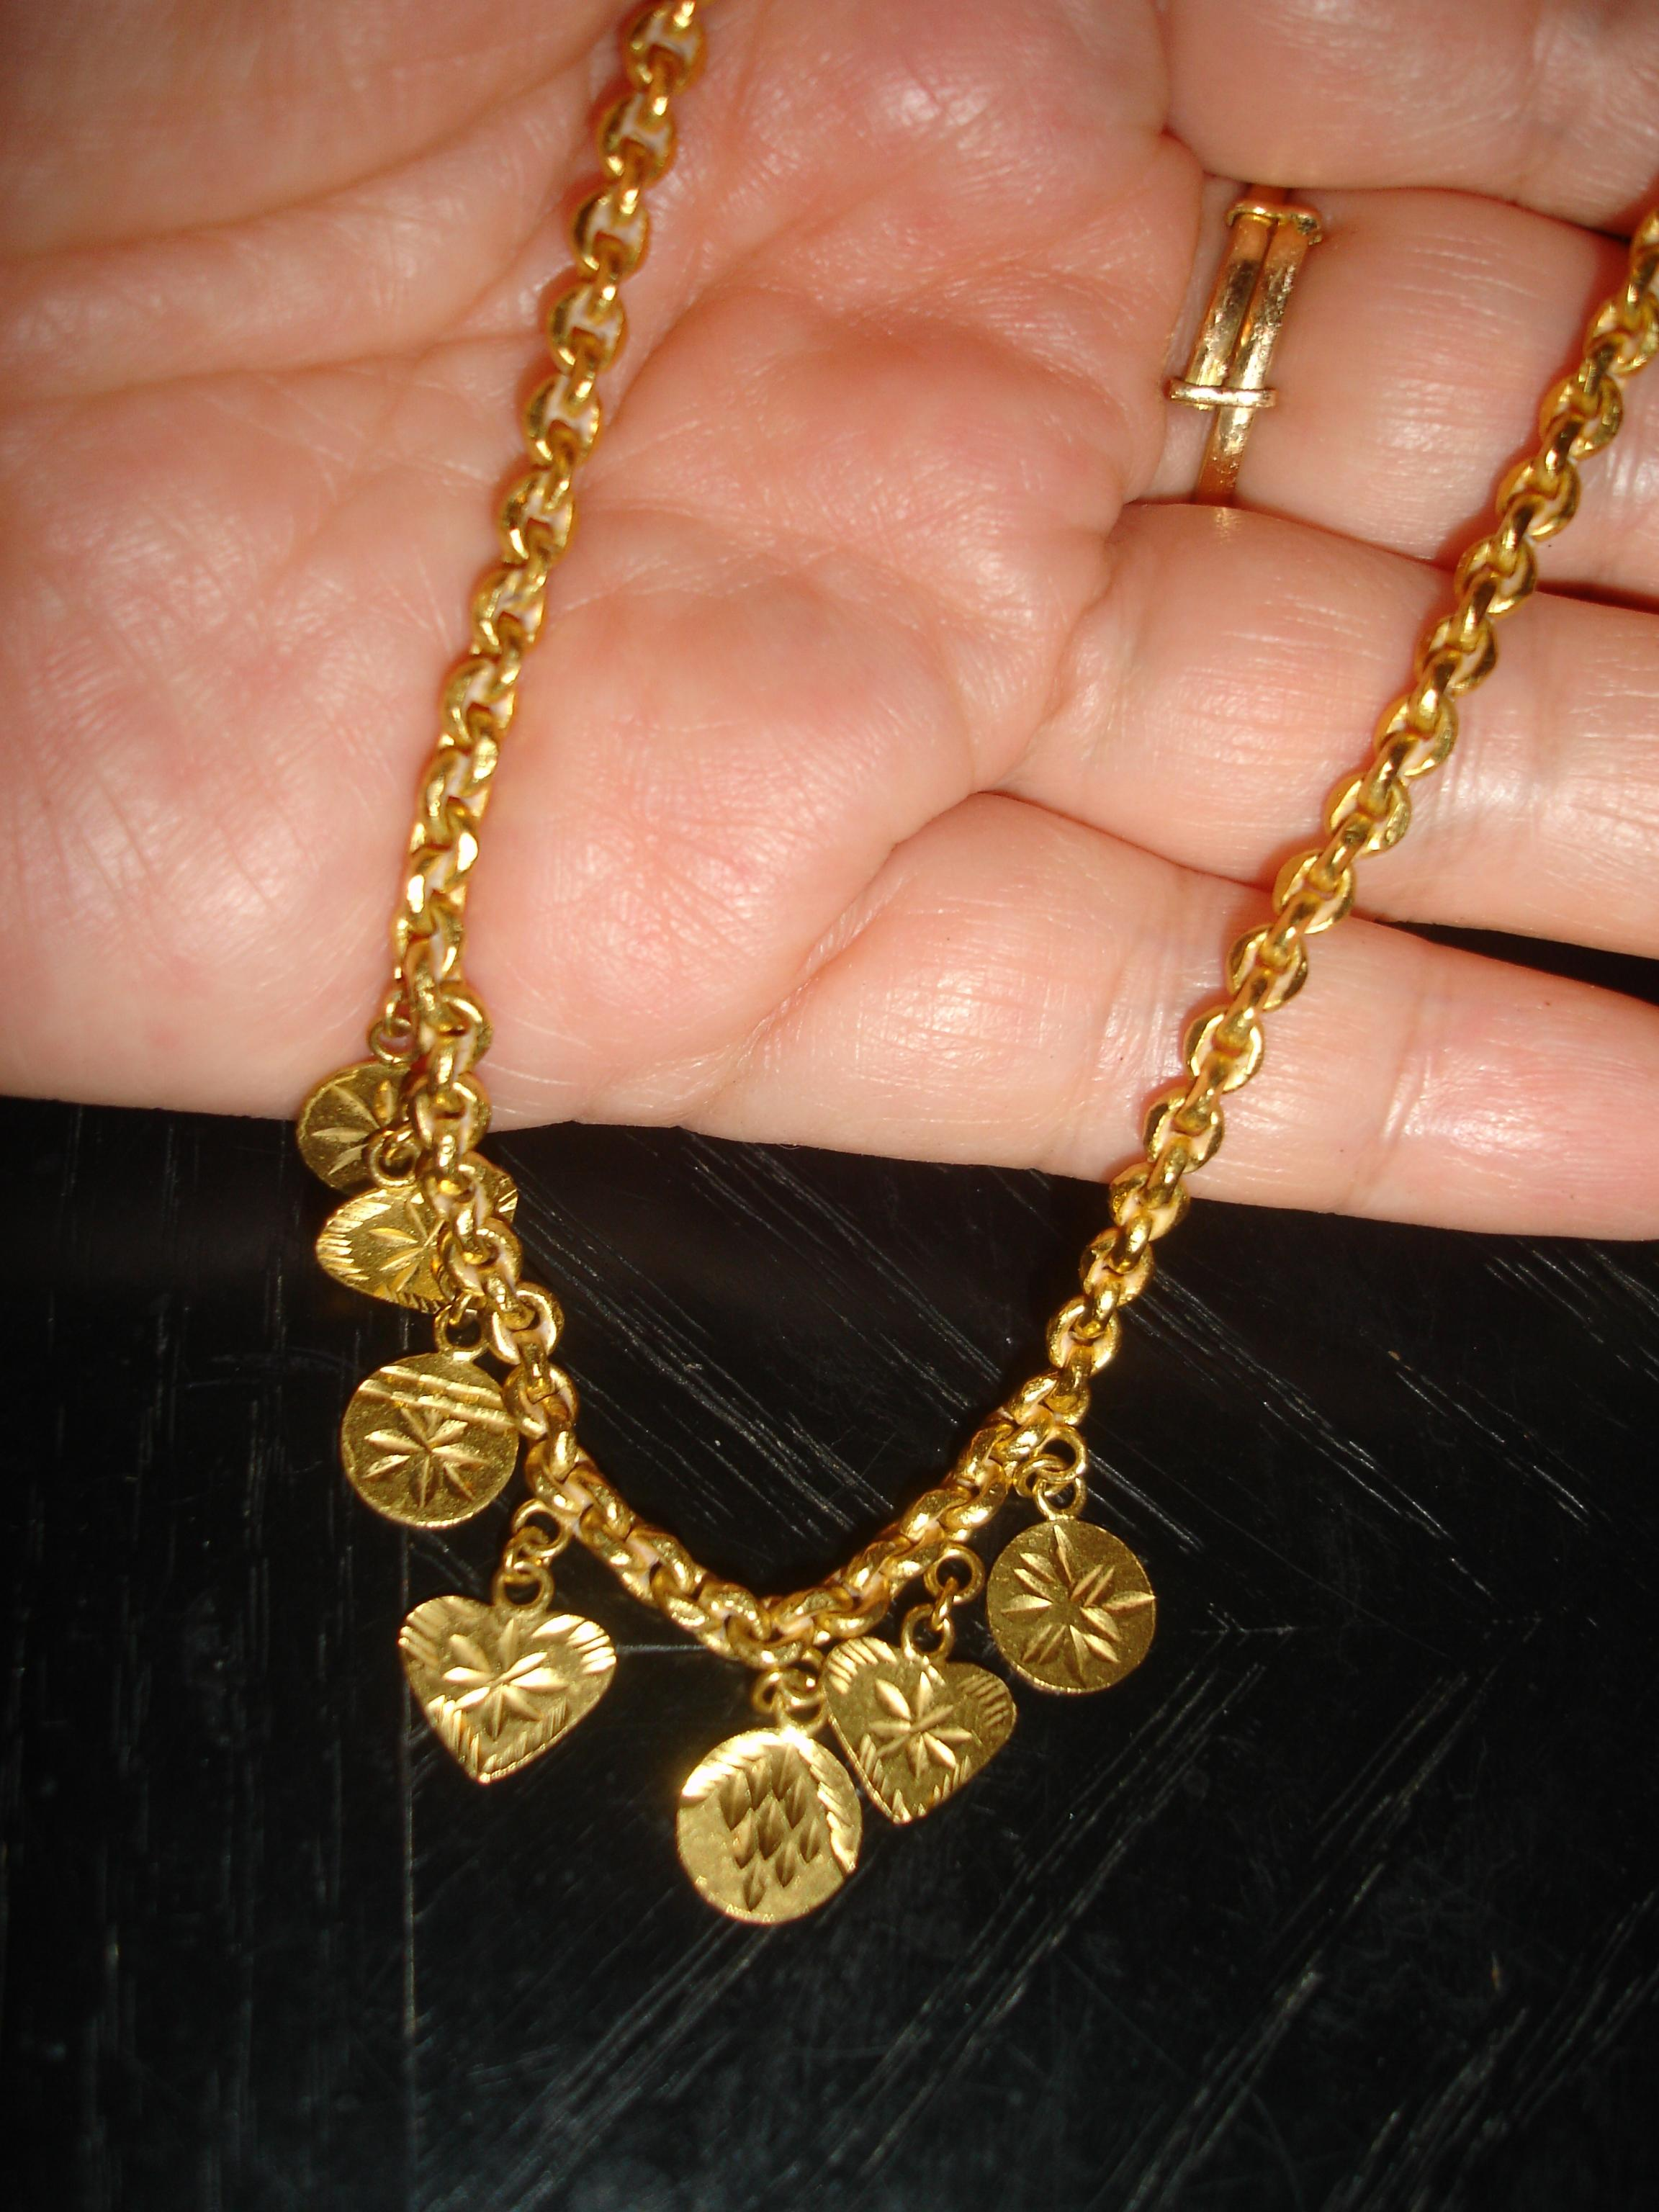 Pure Gold 24 Karat Solid and Earrings From Dubai 22 Grams Necklace